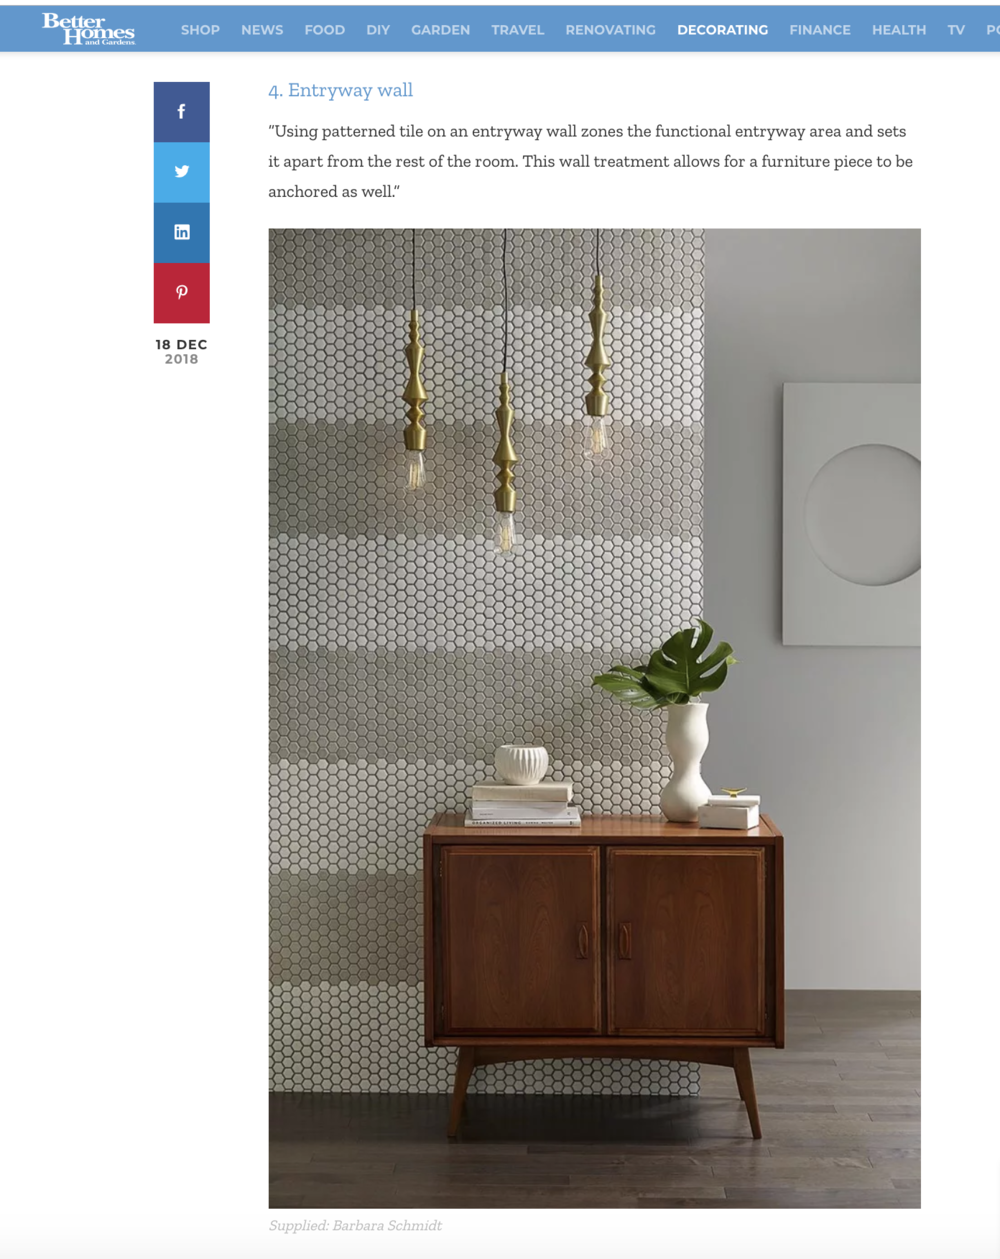 Recent  Better Homes and Gardens  editorial featuring Barbara Schmidt's custom interiors and exteriors - Hallway design highlights  Jeffrey Court Tile ,  CB2,   Mirage Flooring ,  Mid Mod Men  .